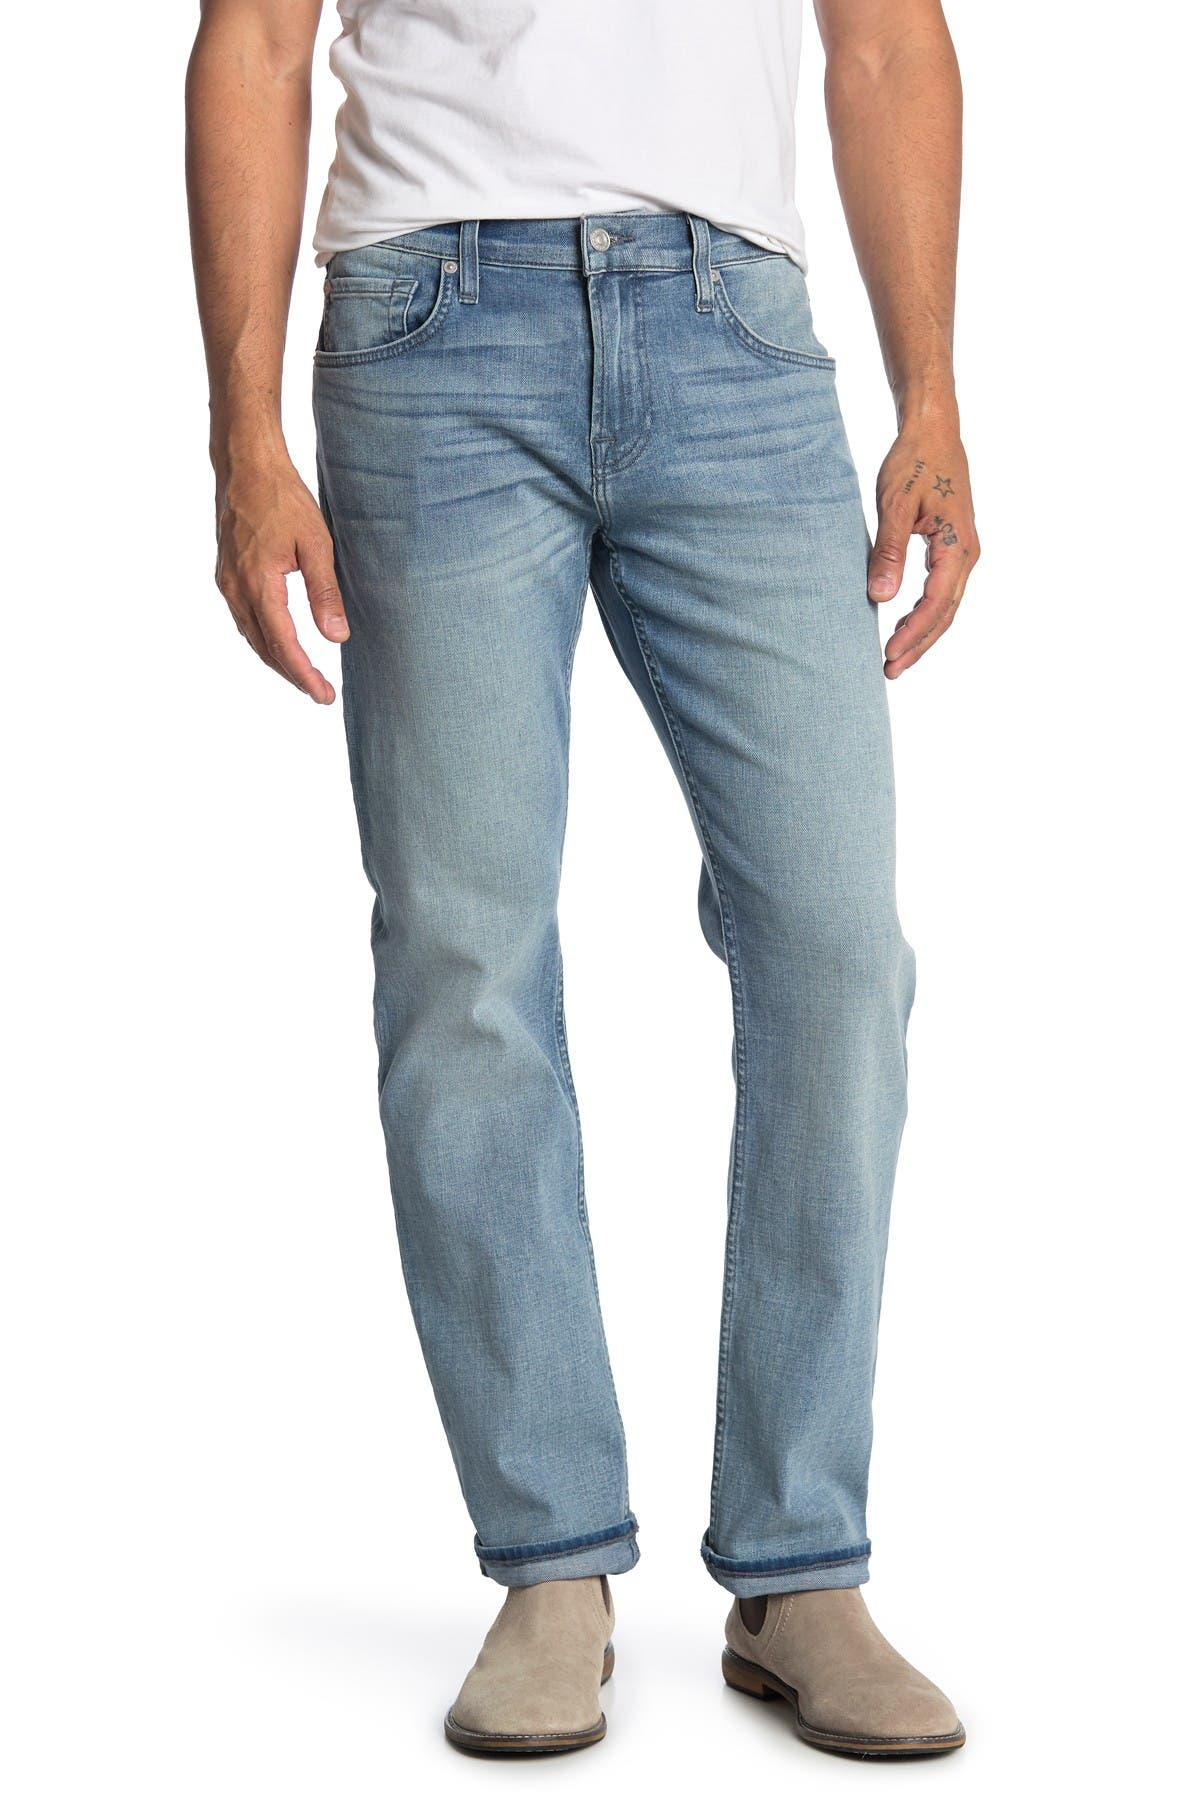 Image of 7 For All Mankind Straight Leg Jeans